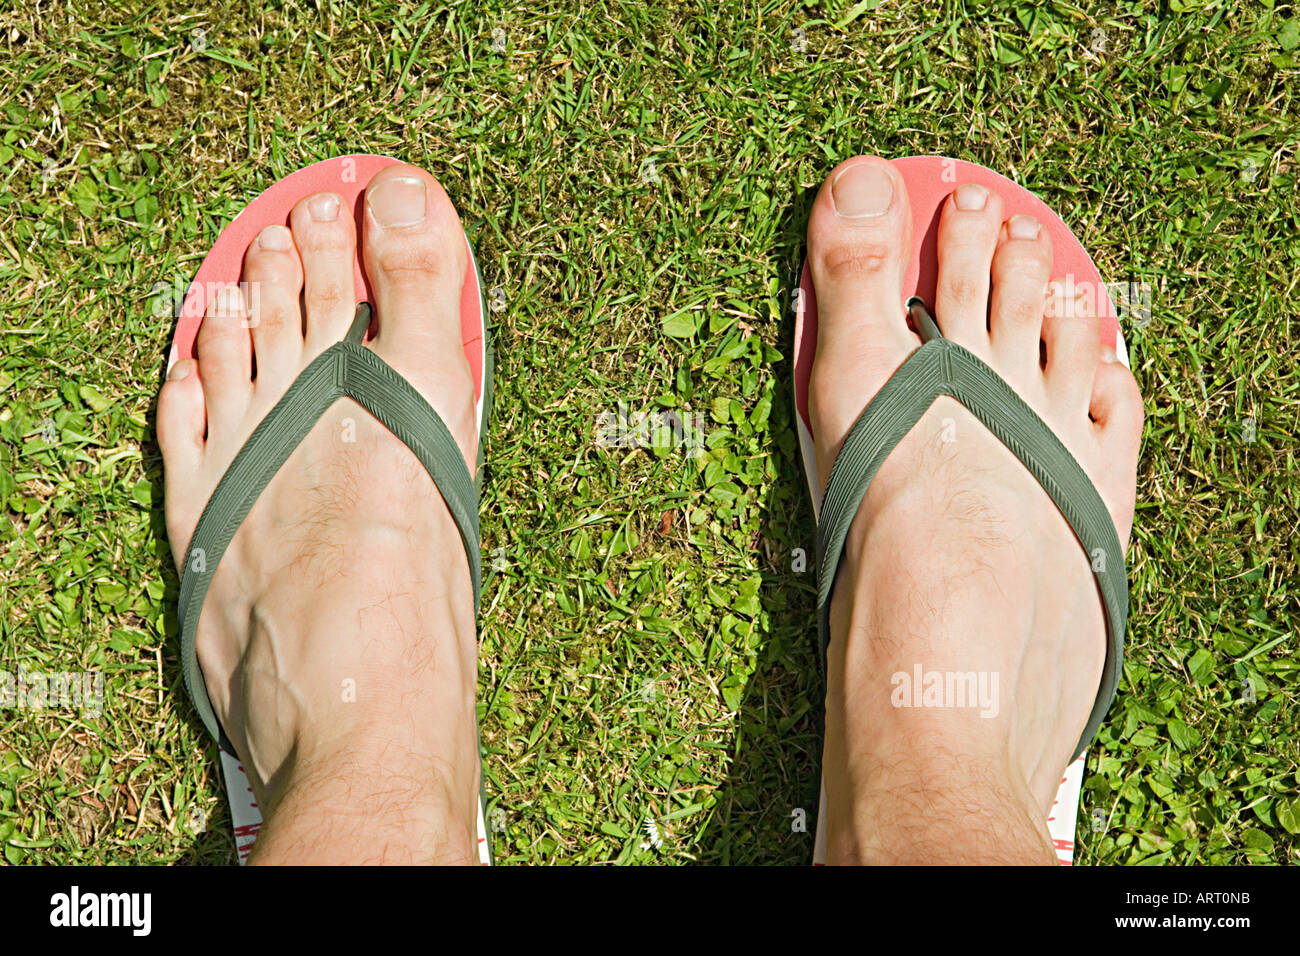 Feet of a man in flip flops - Stock Image